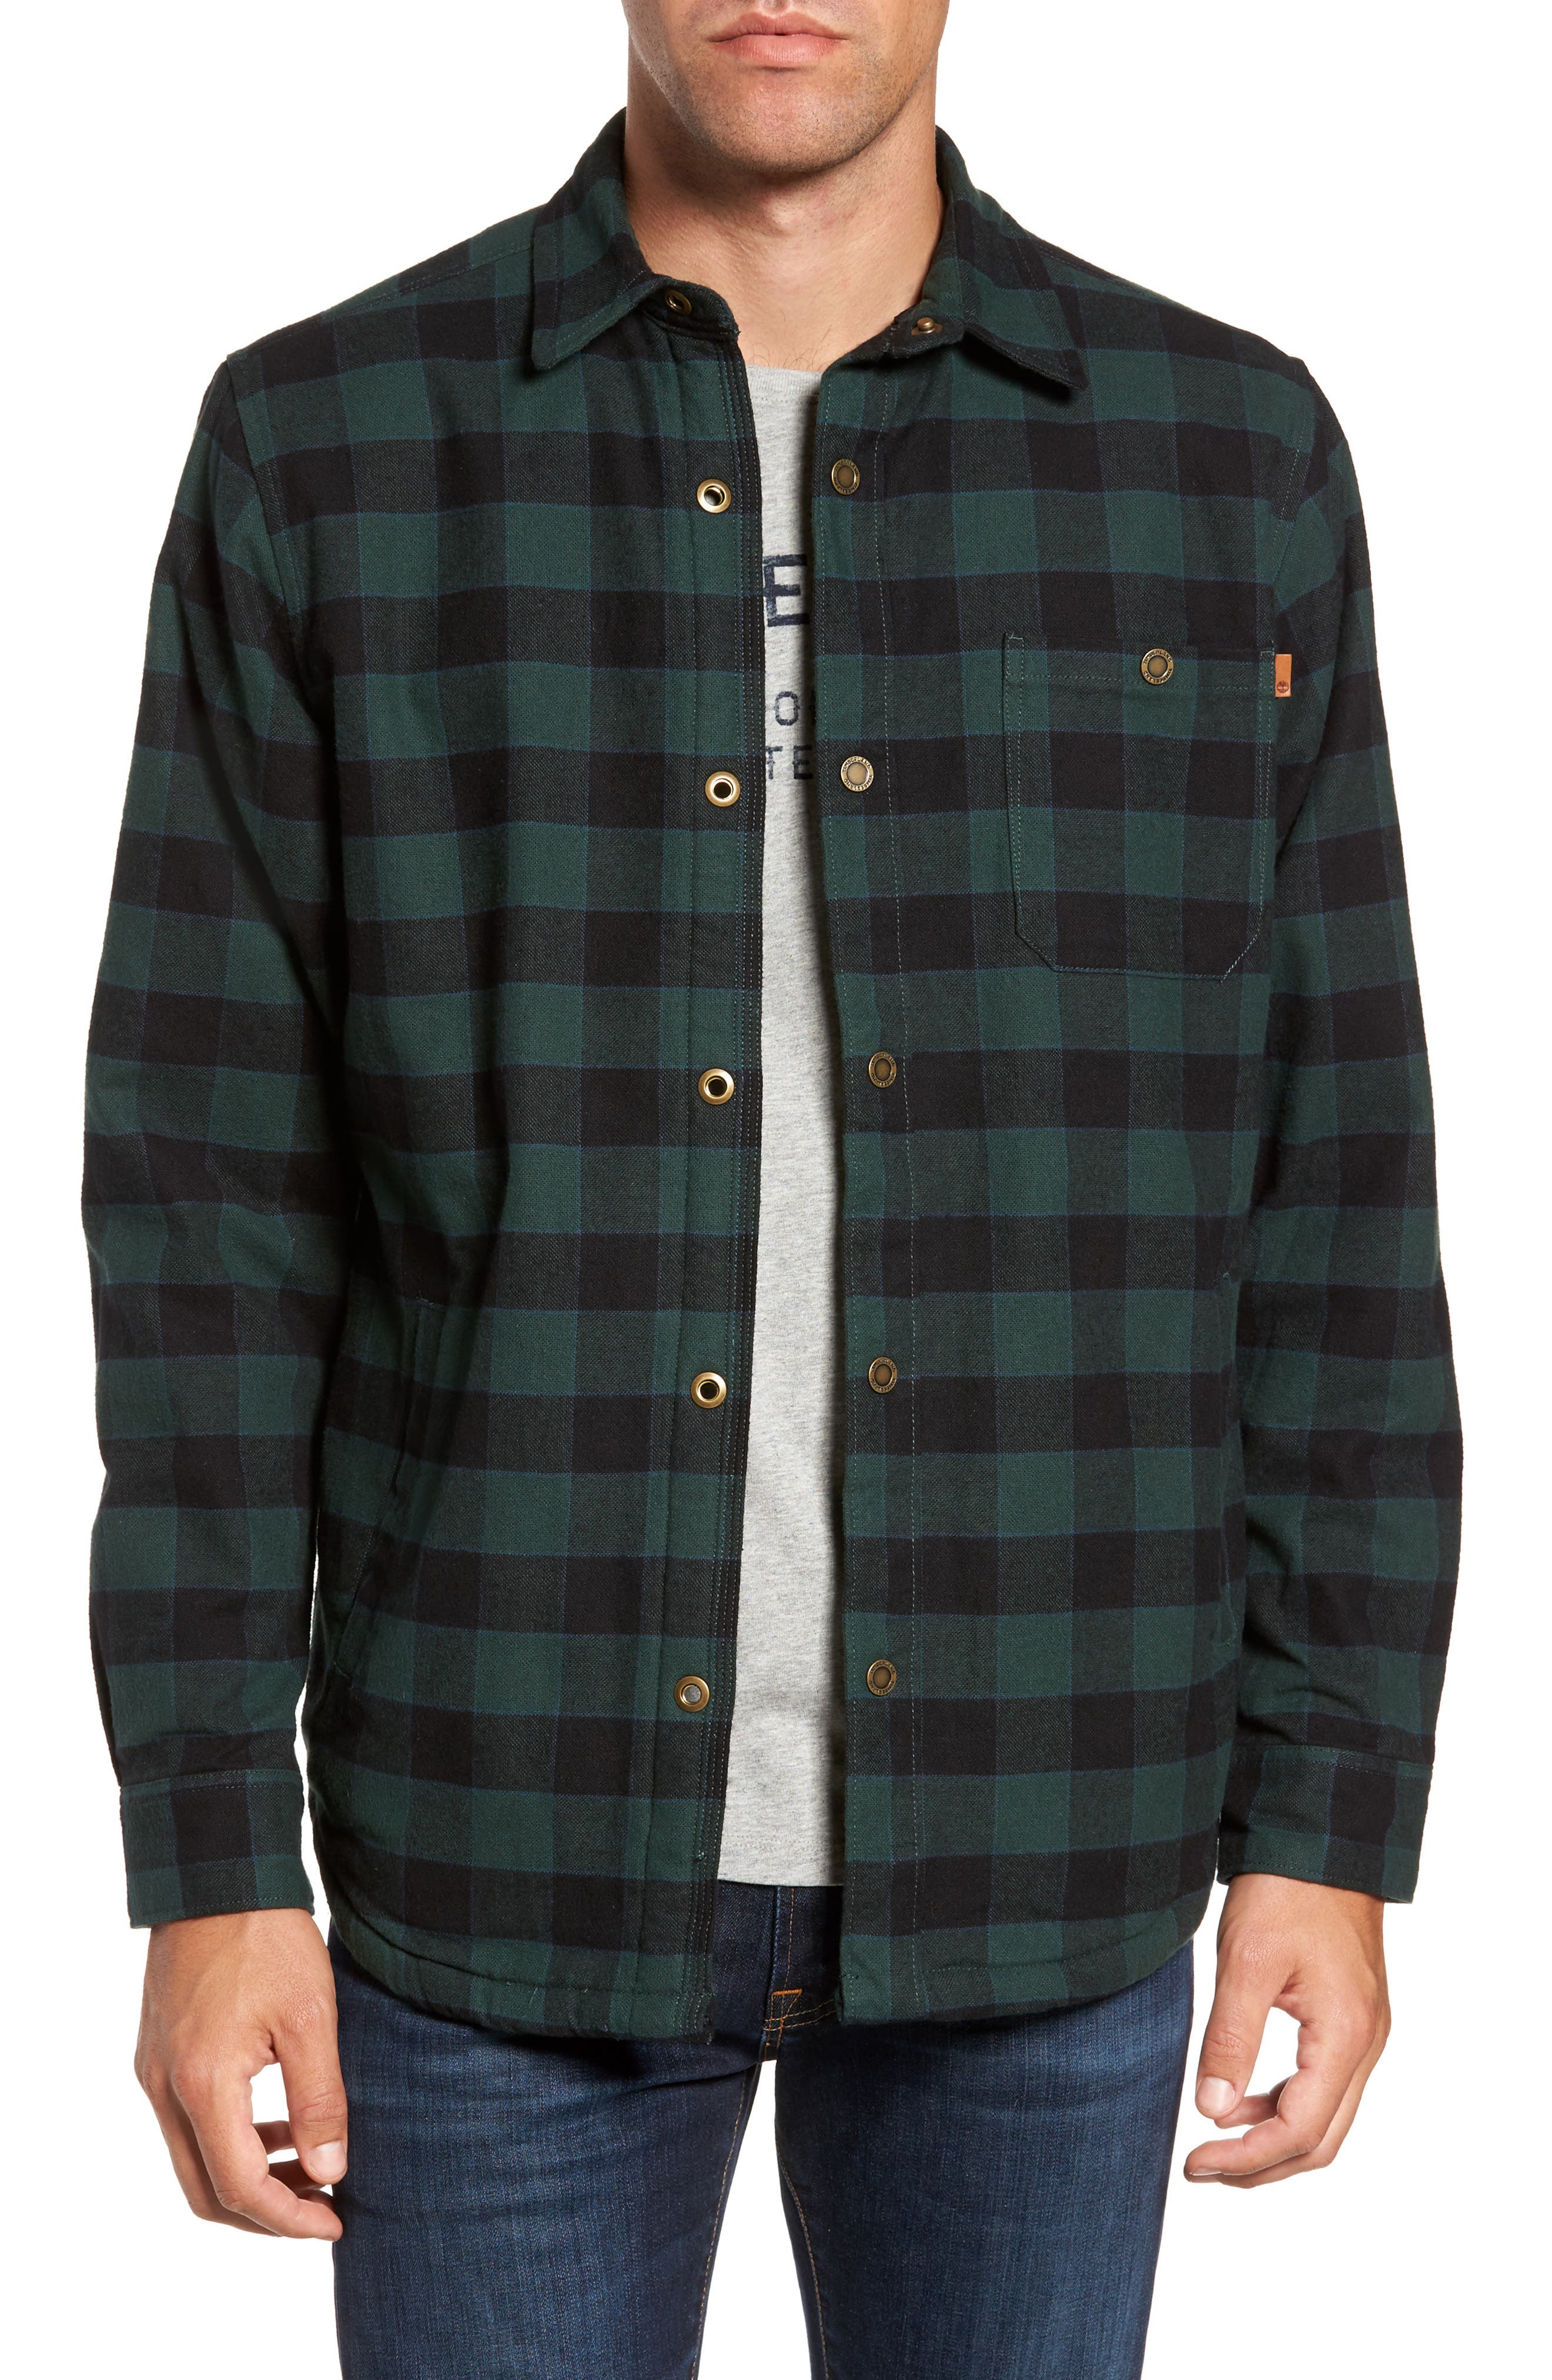 Timberland Check Shirt Jacket with Faux Shearling Lining